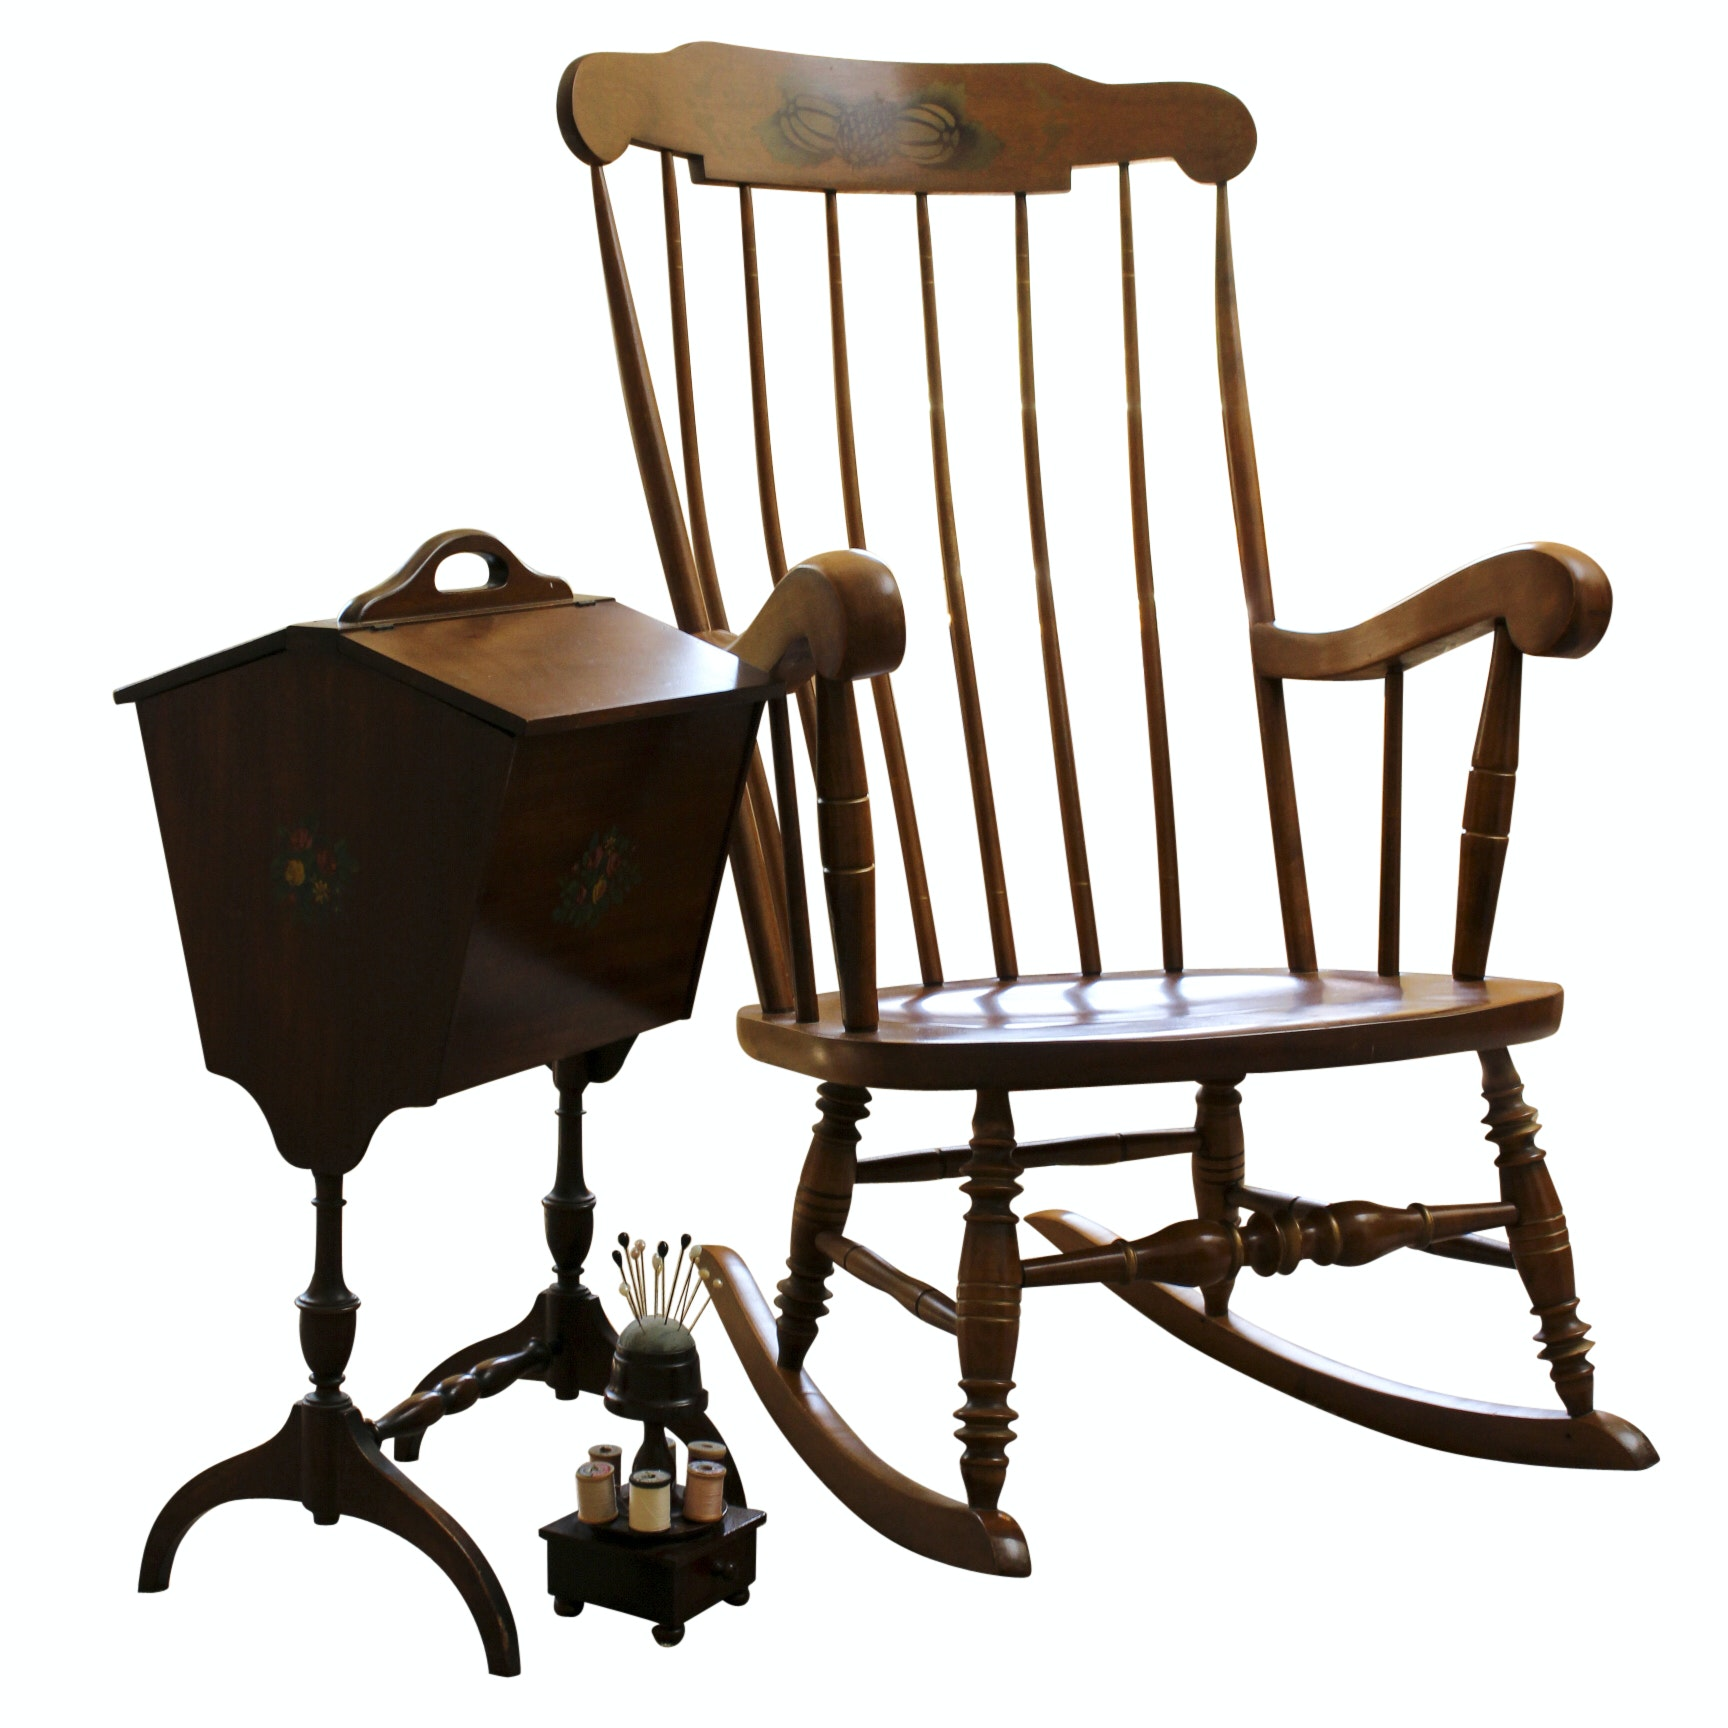 Ethan Allen Vintage Rocking Chair and Sewing Box